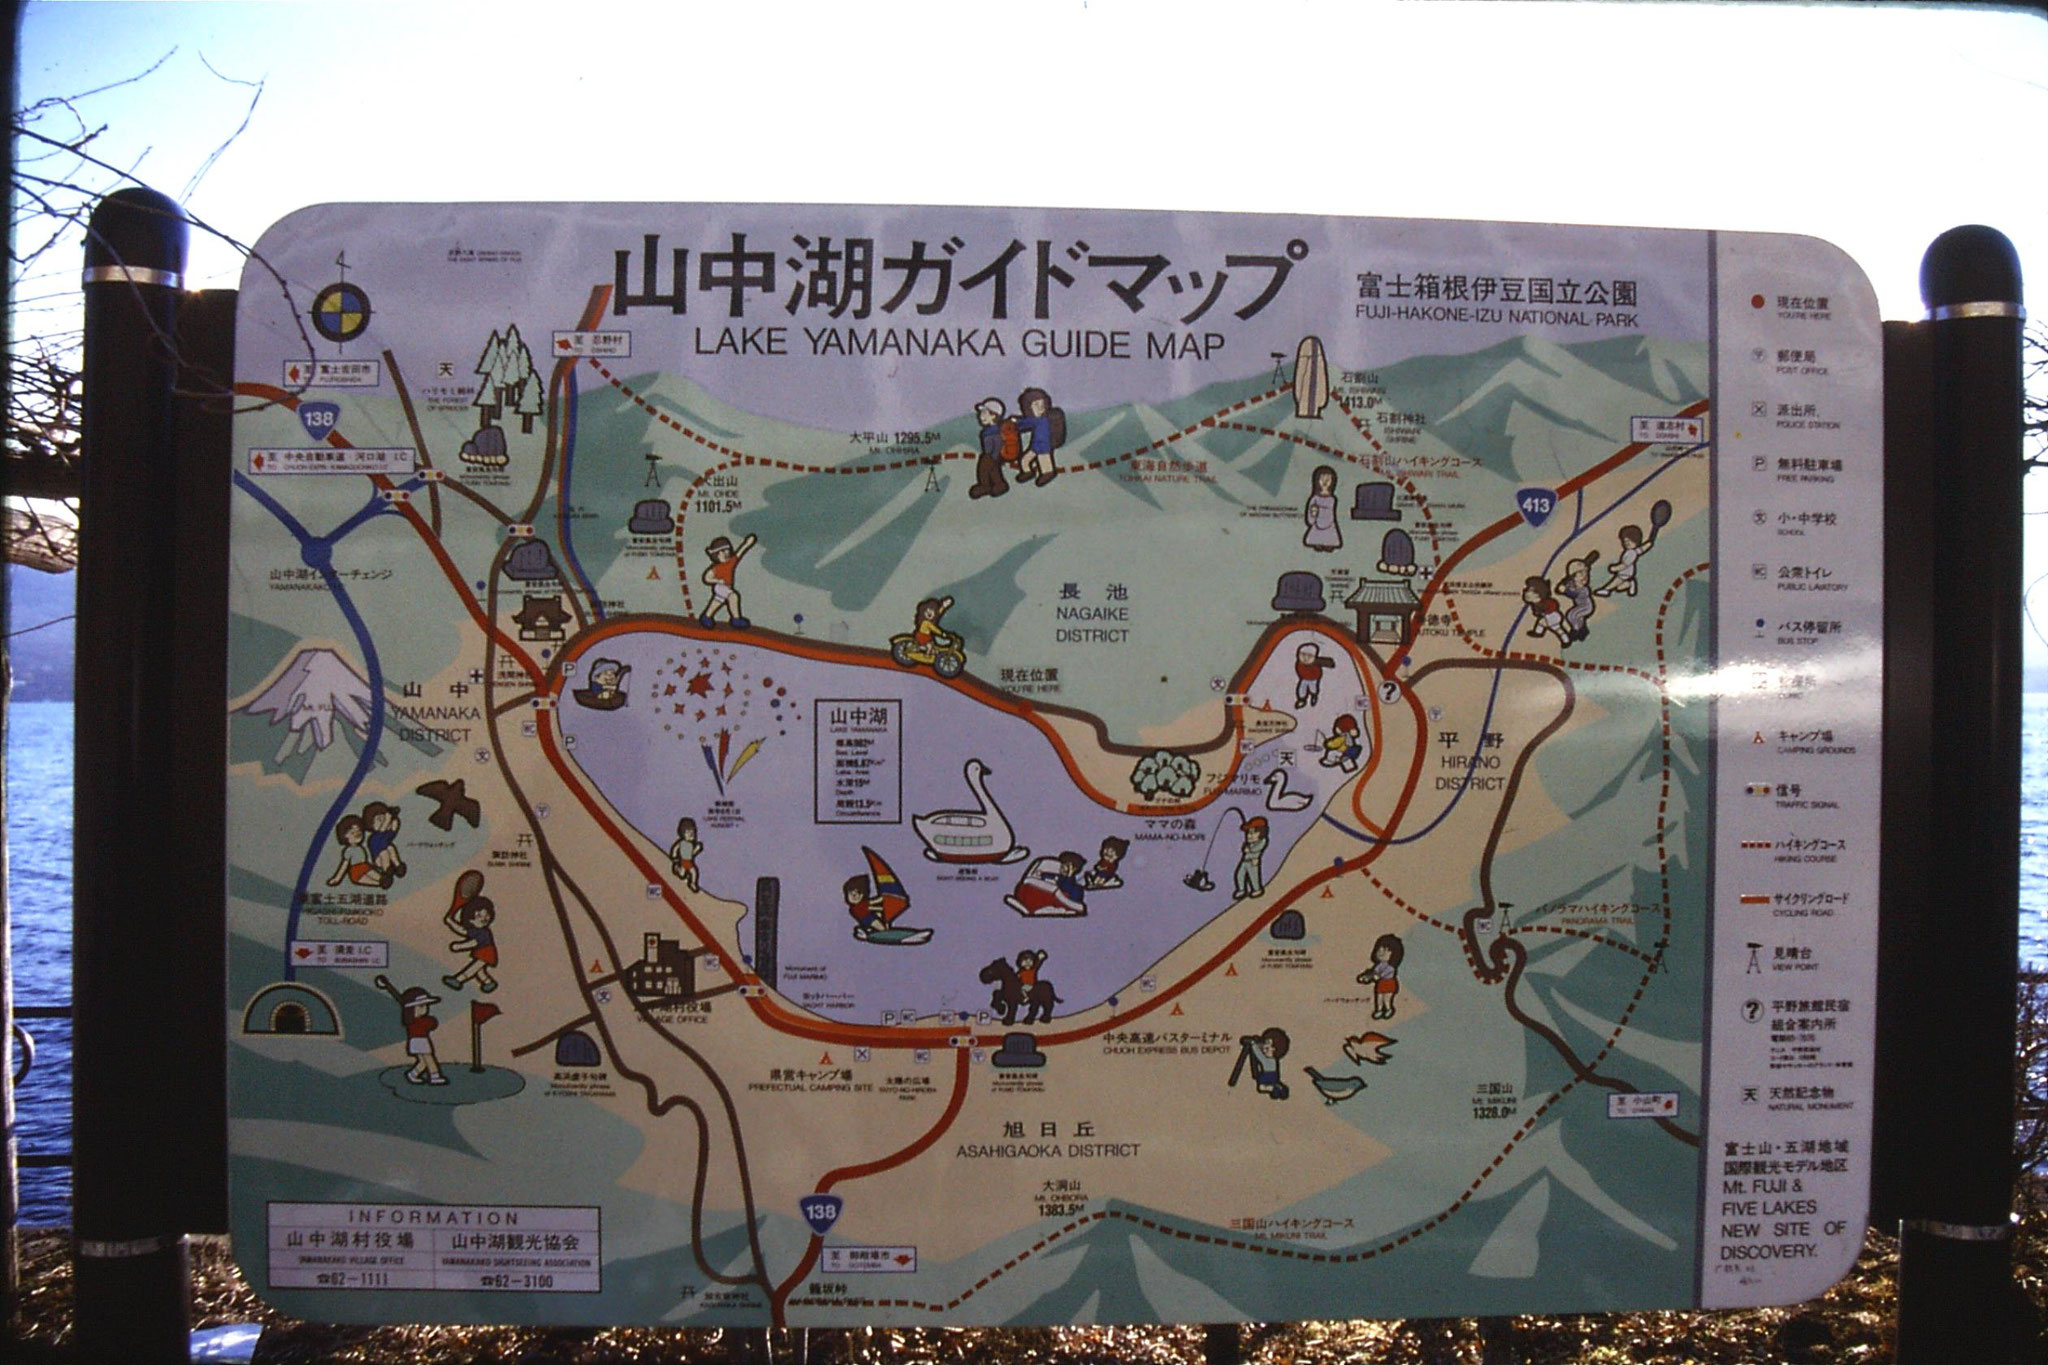 31/12/1988: 11: map of Five Lake area